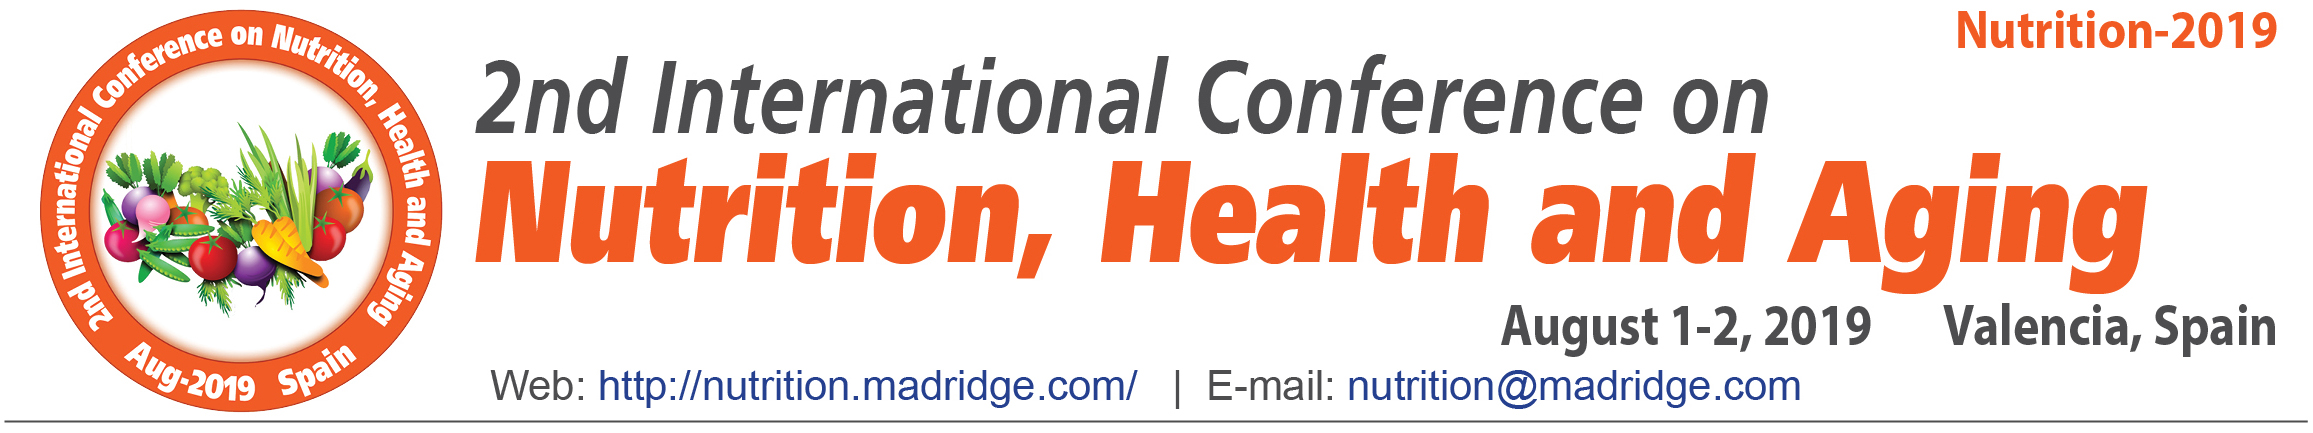 2nd International Conference on Nutrition, Health and Aging, Valencia, Spain, Spain